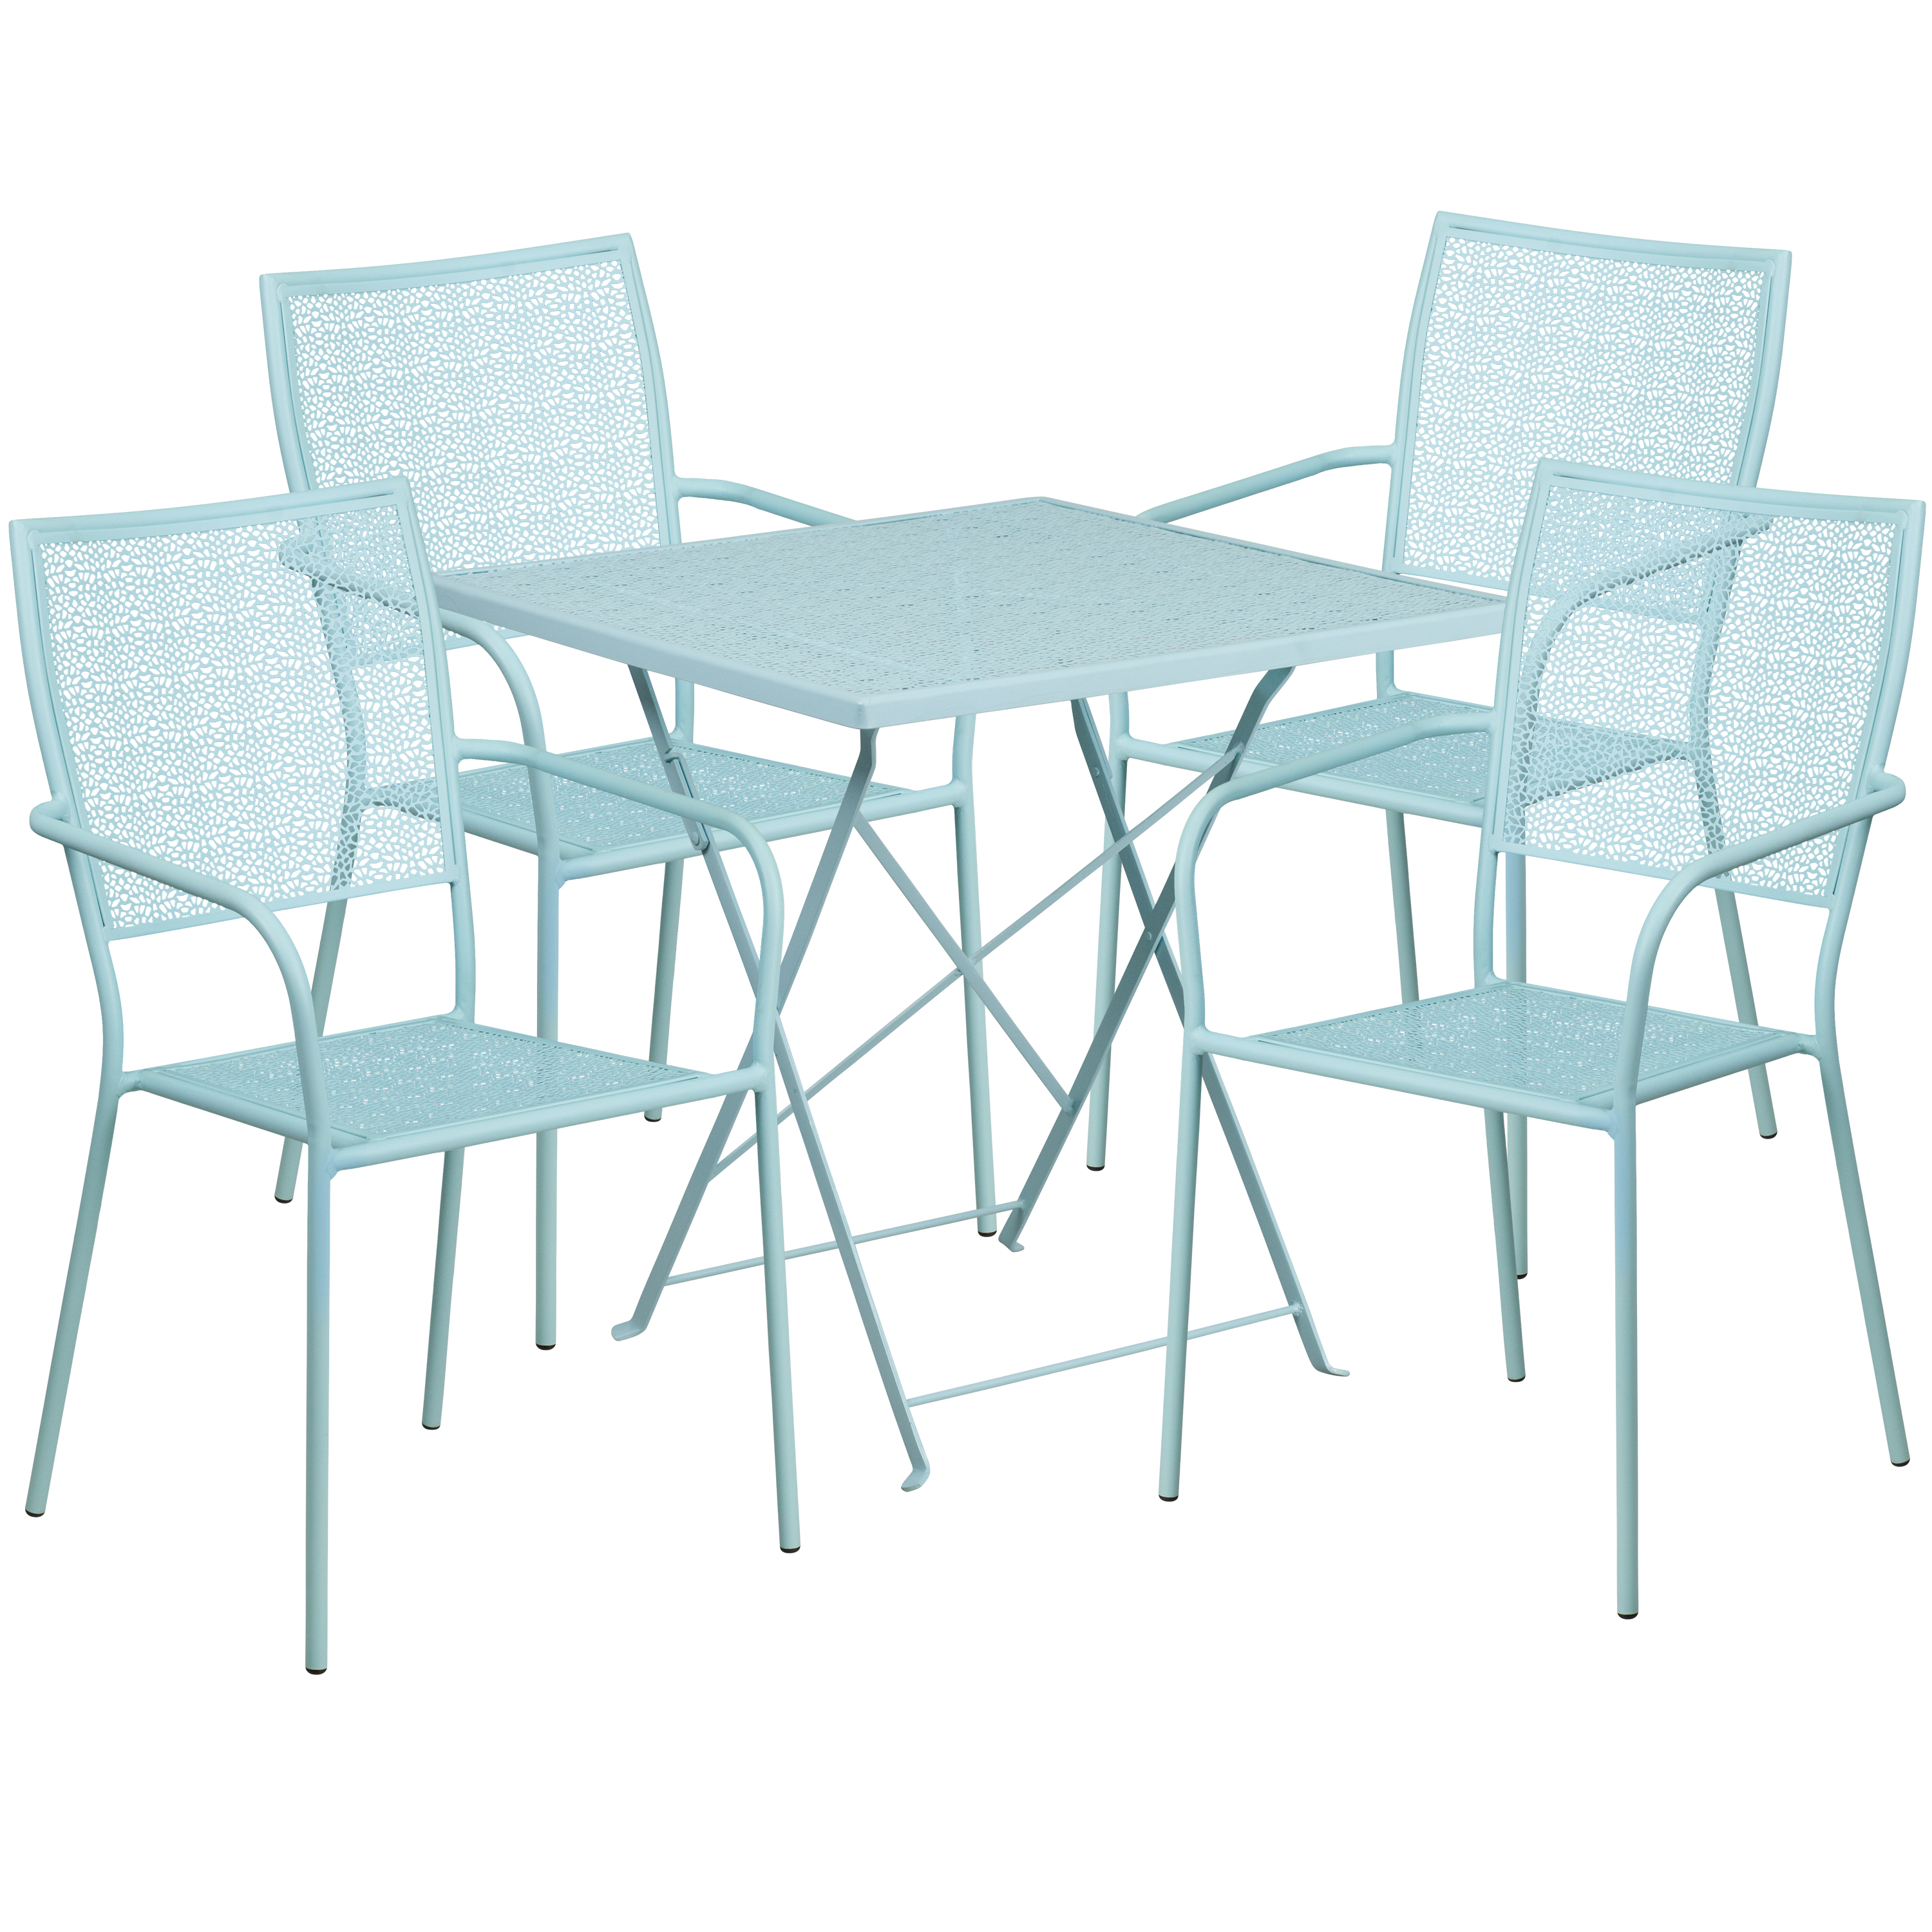 Flash Furniture 28'' Square Indoor-Outdoor Steel Folding Patio Table Set with 4 Square Back Chairs, Multiple Colors